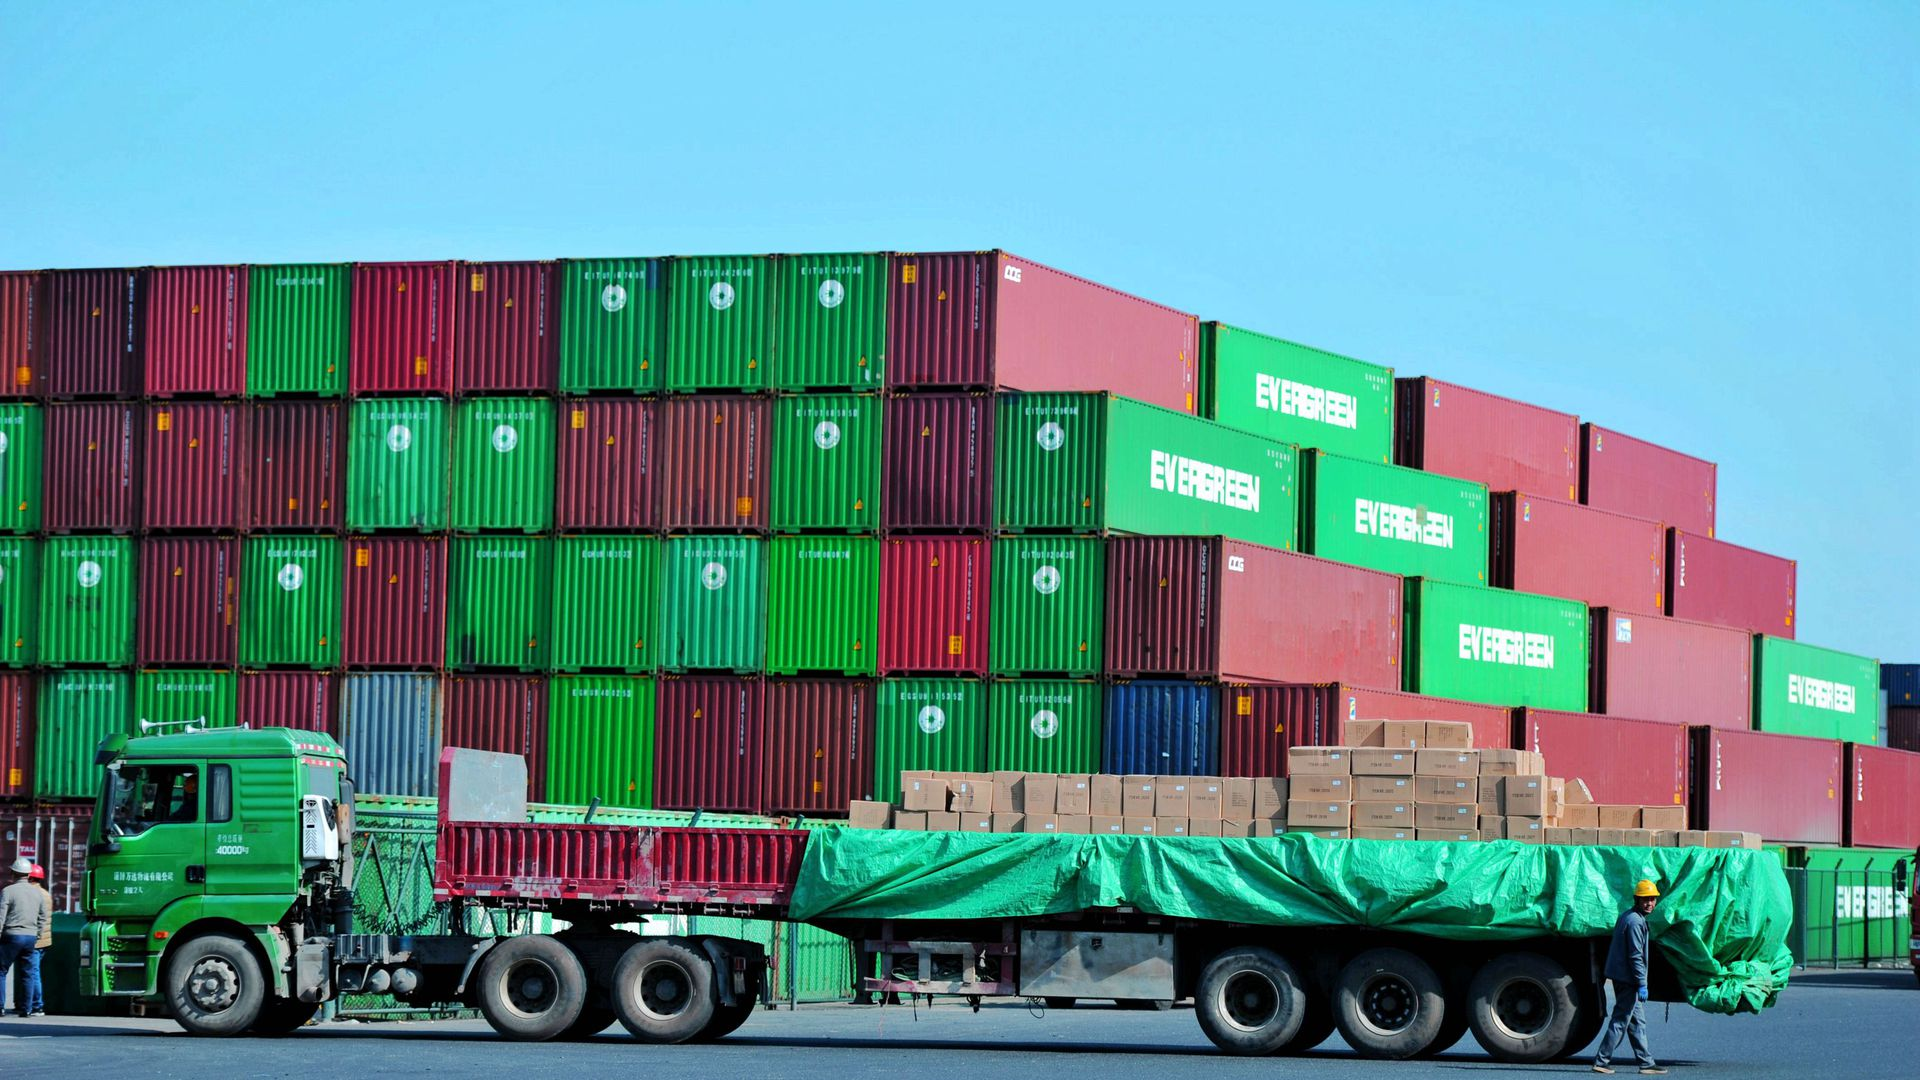 A distribution company outside the container port in Qingdao in east China's Shandong province.